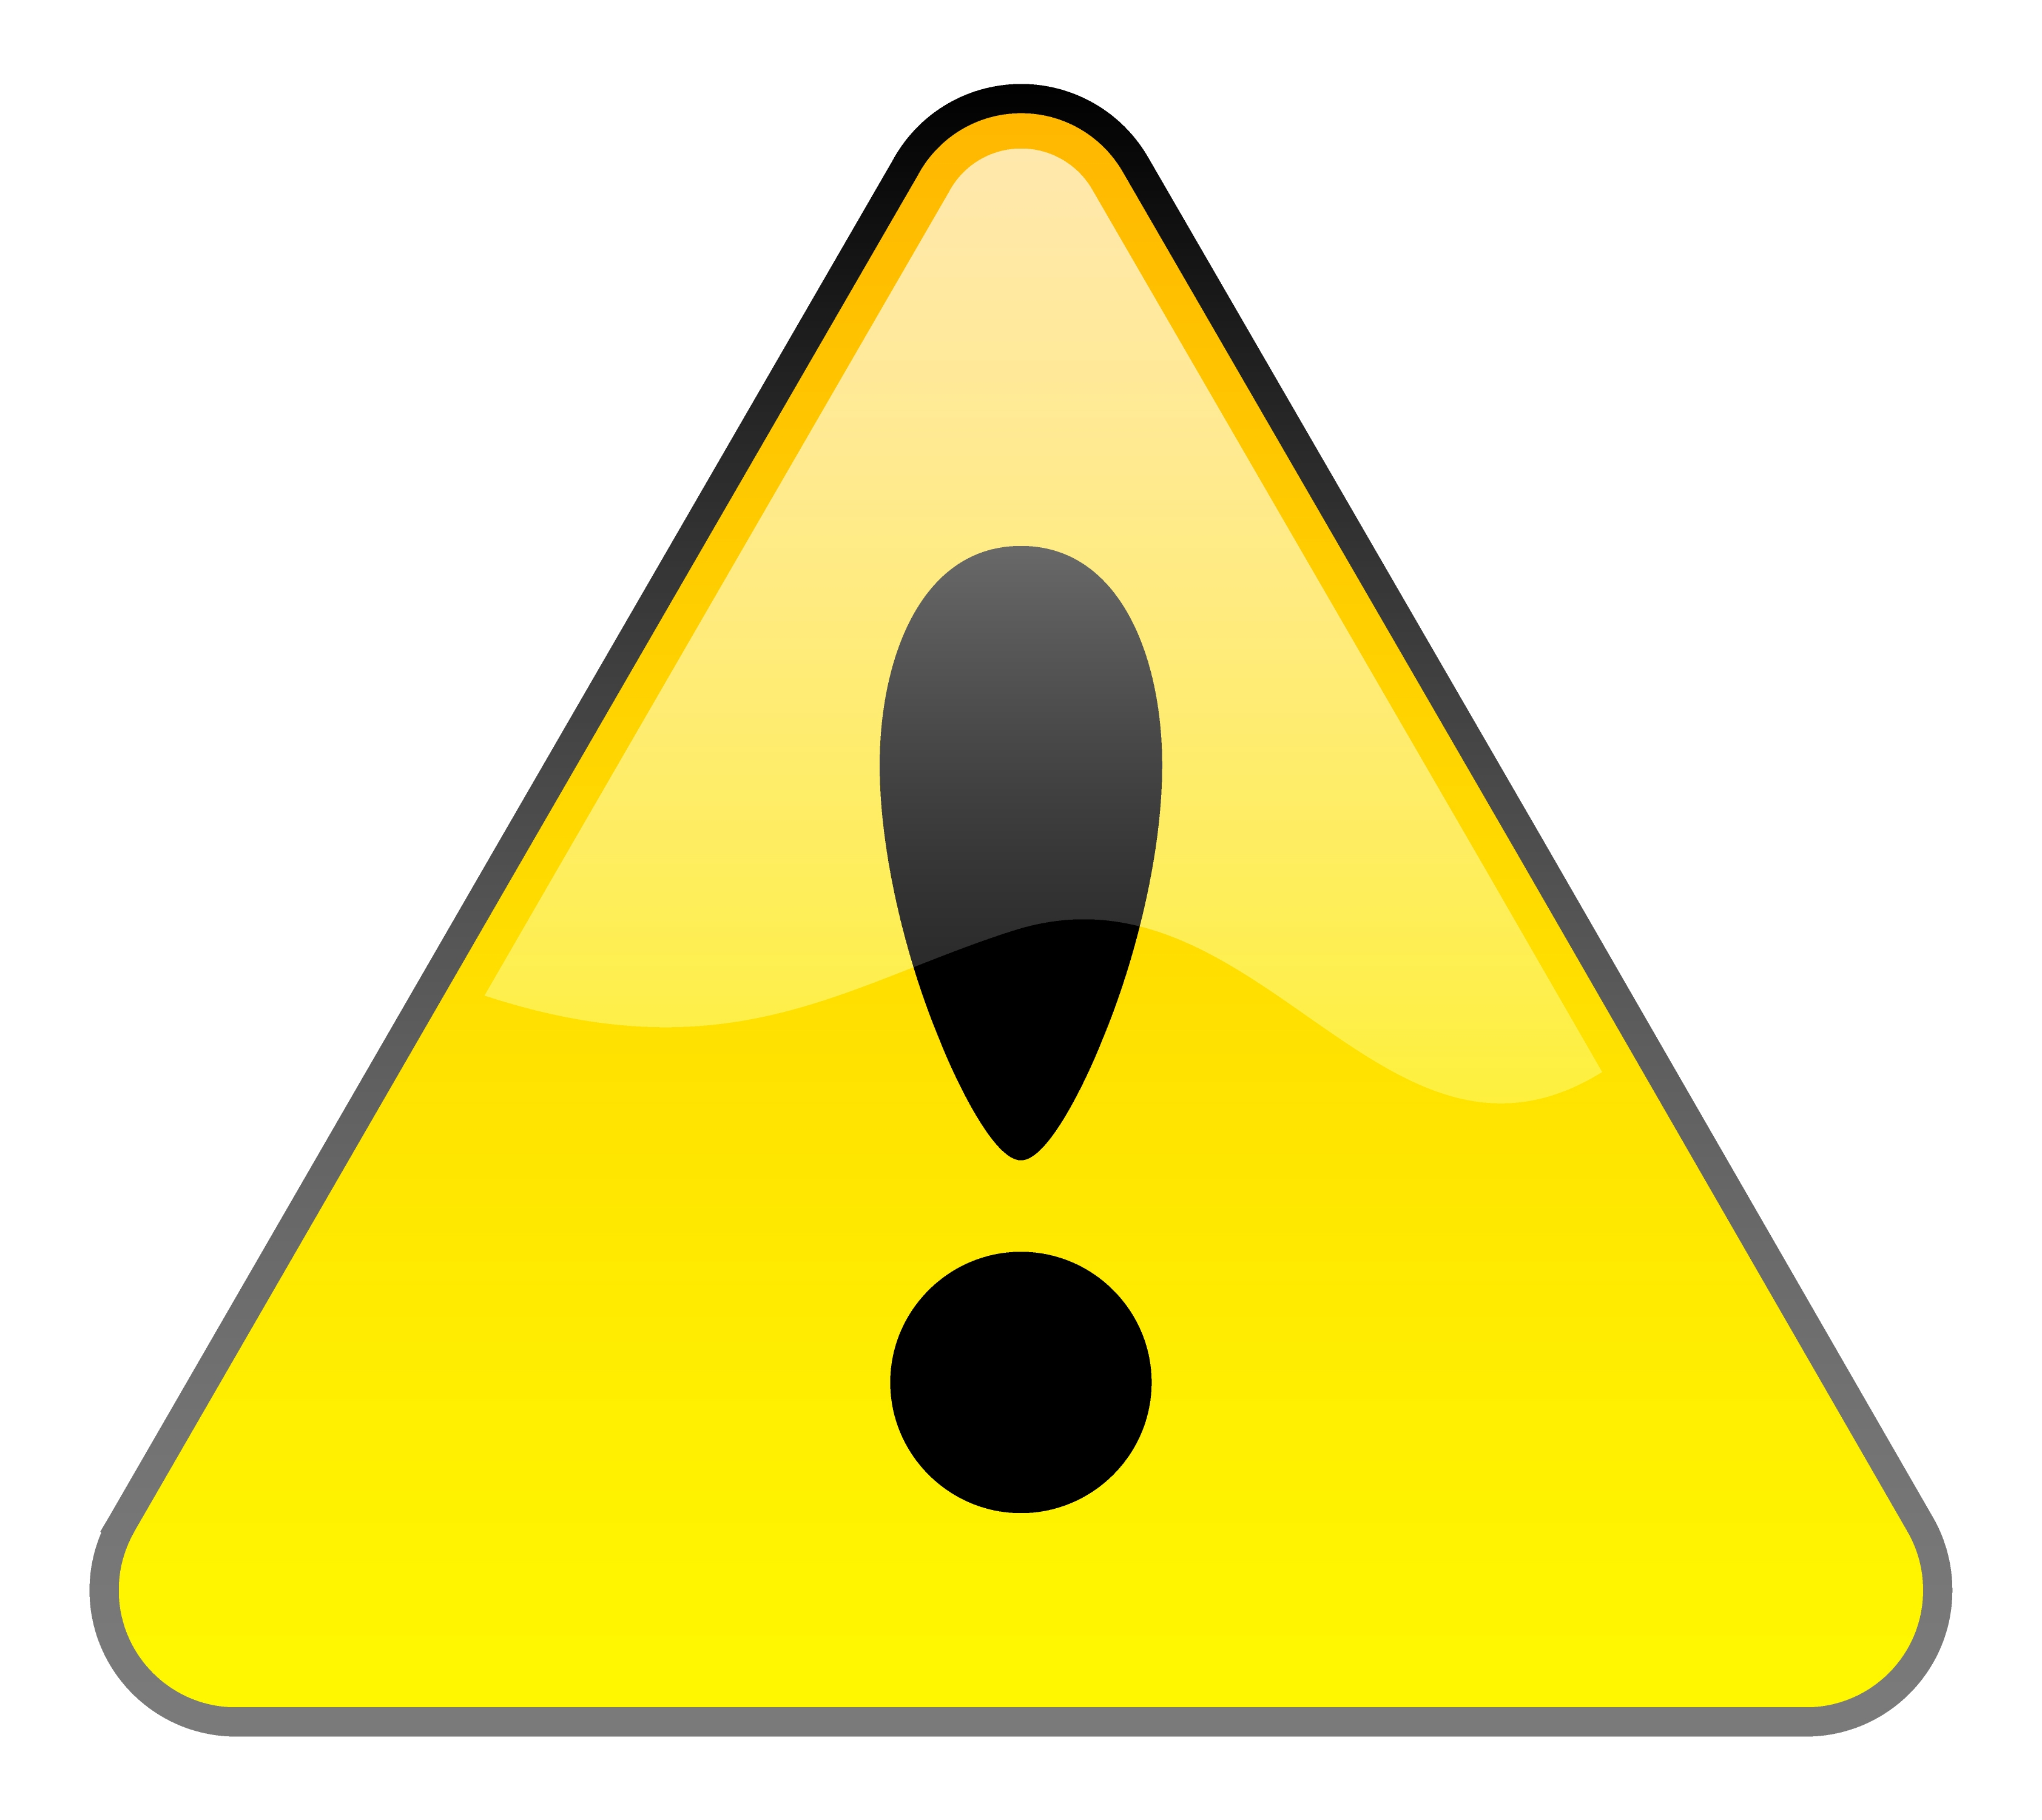 Sign hostted clipartbarn . Caution clipart mark